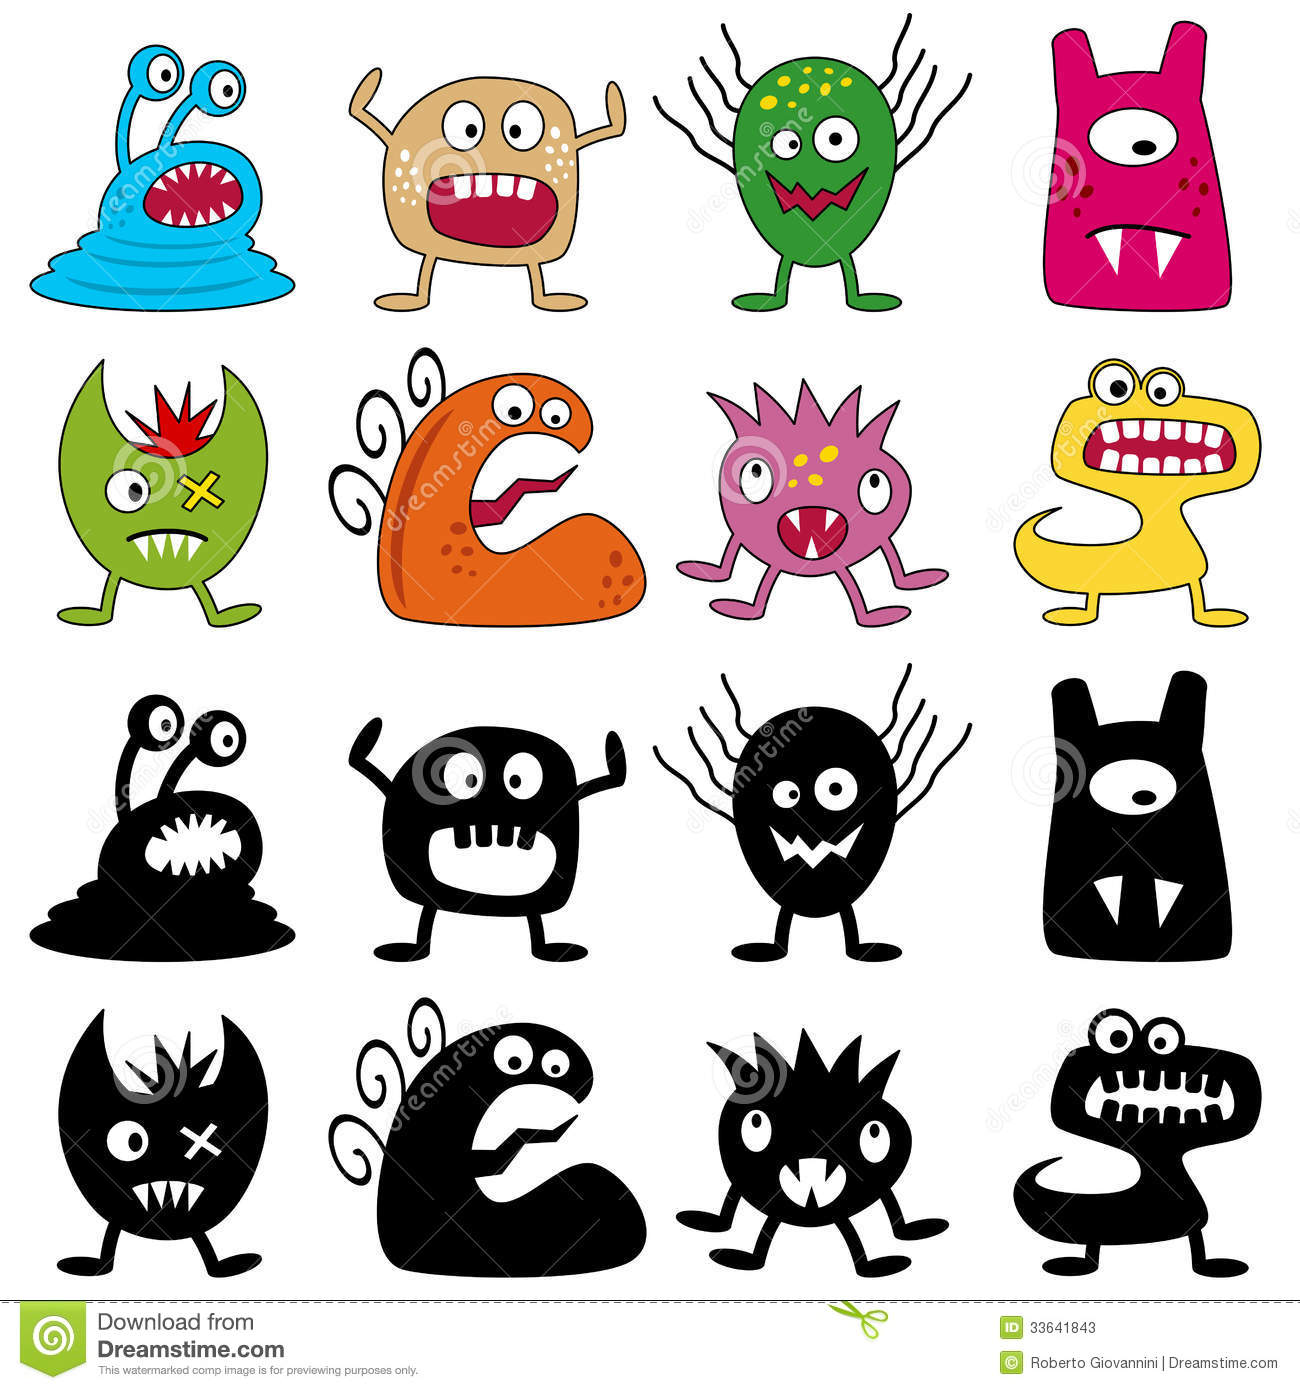 Halloween Monsters Royalty Free Stock Image - Image: 25384416